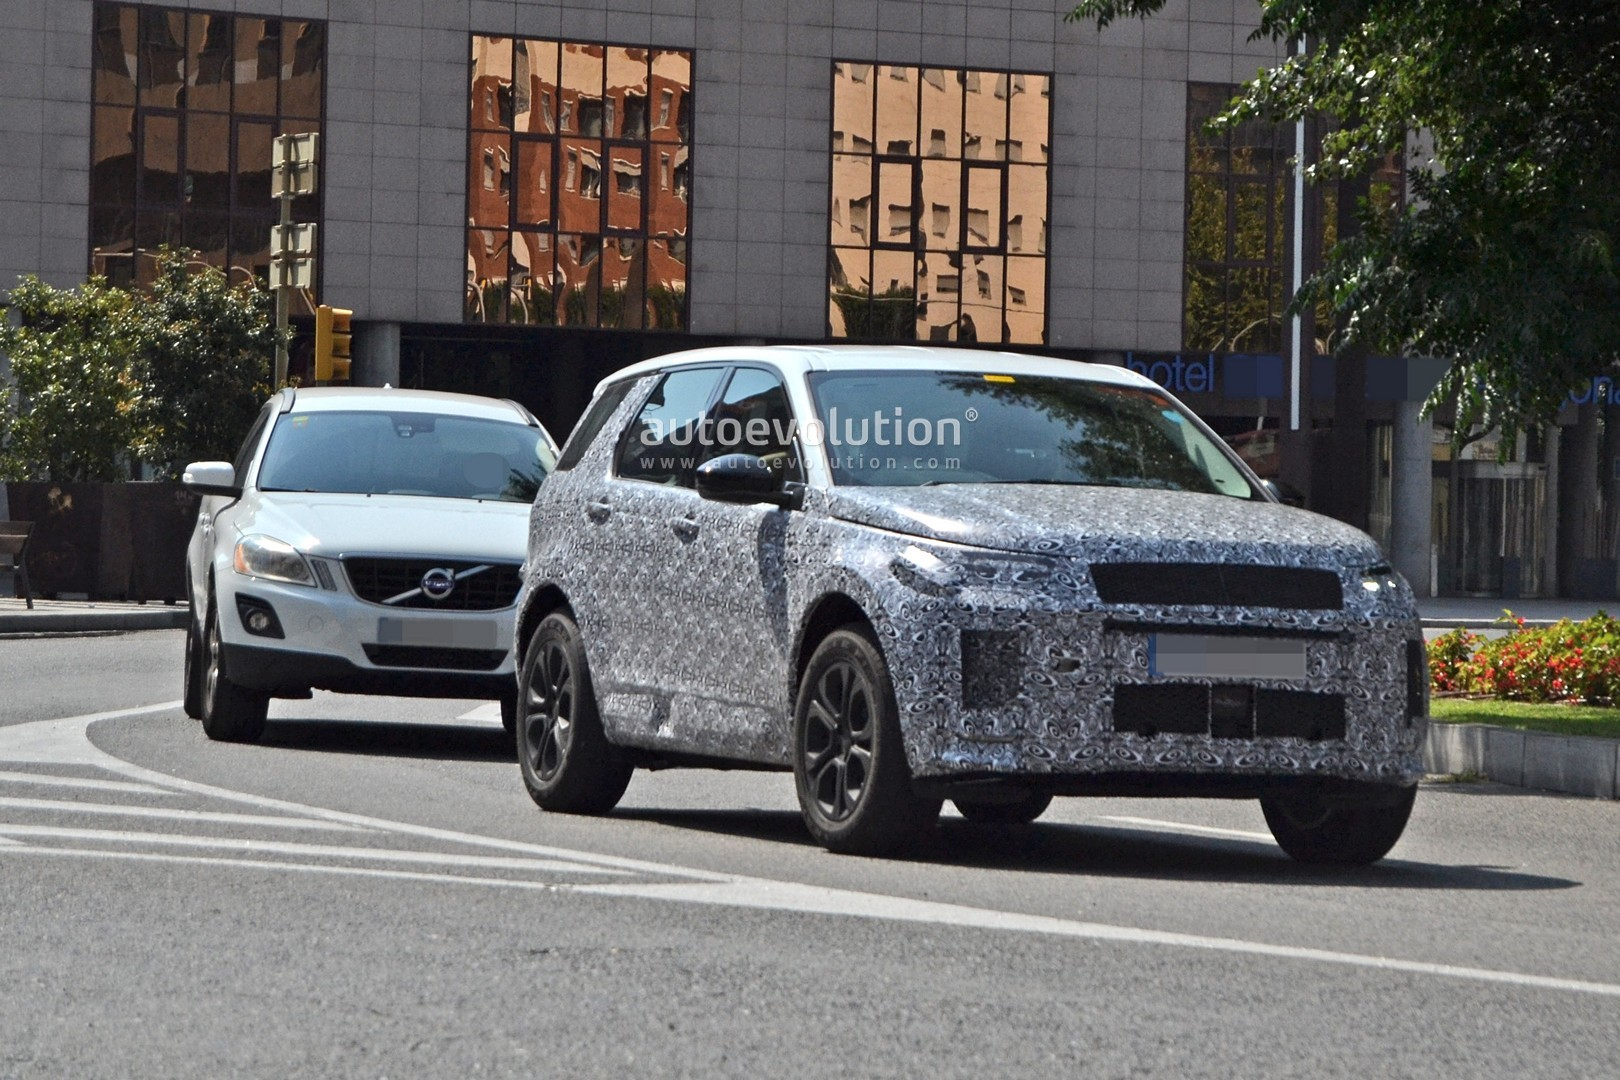 2018 Land Rover Discovery >> 2020 Land Rover Discovery Sport Scooped With New Design - autoevolution